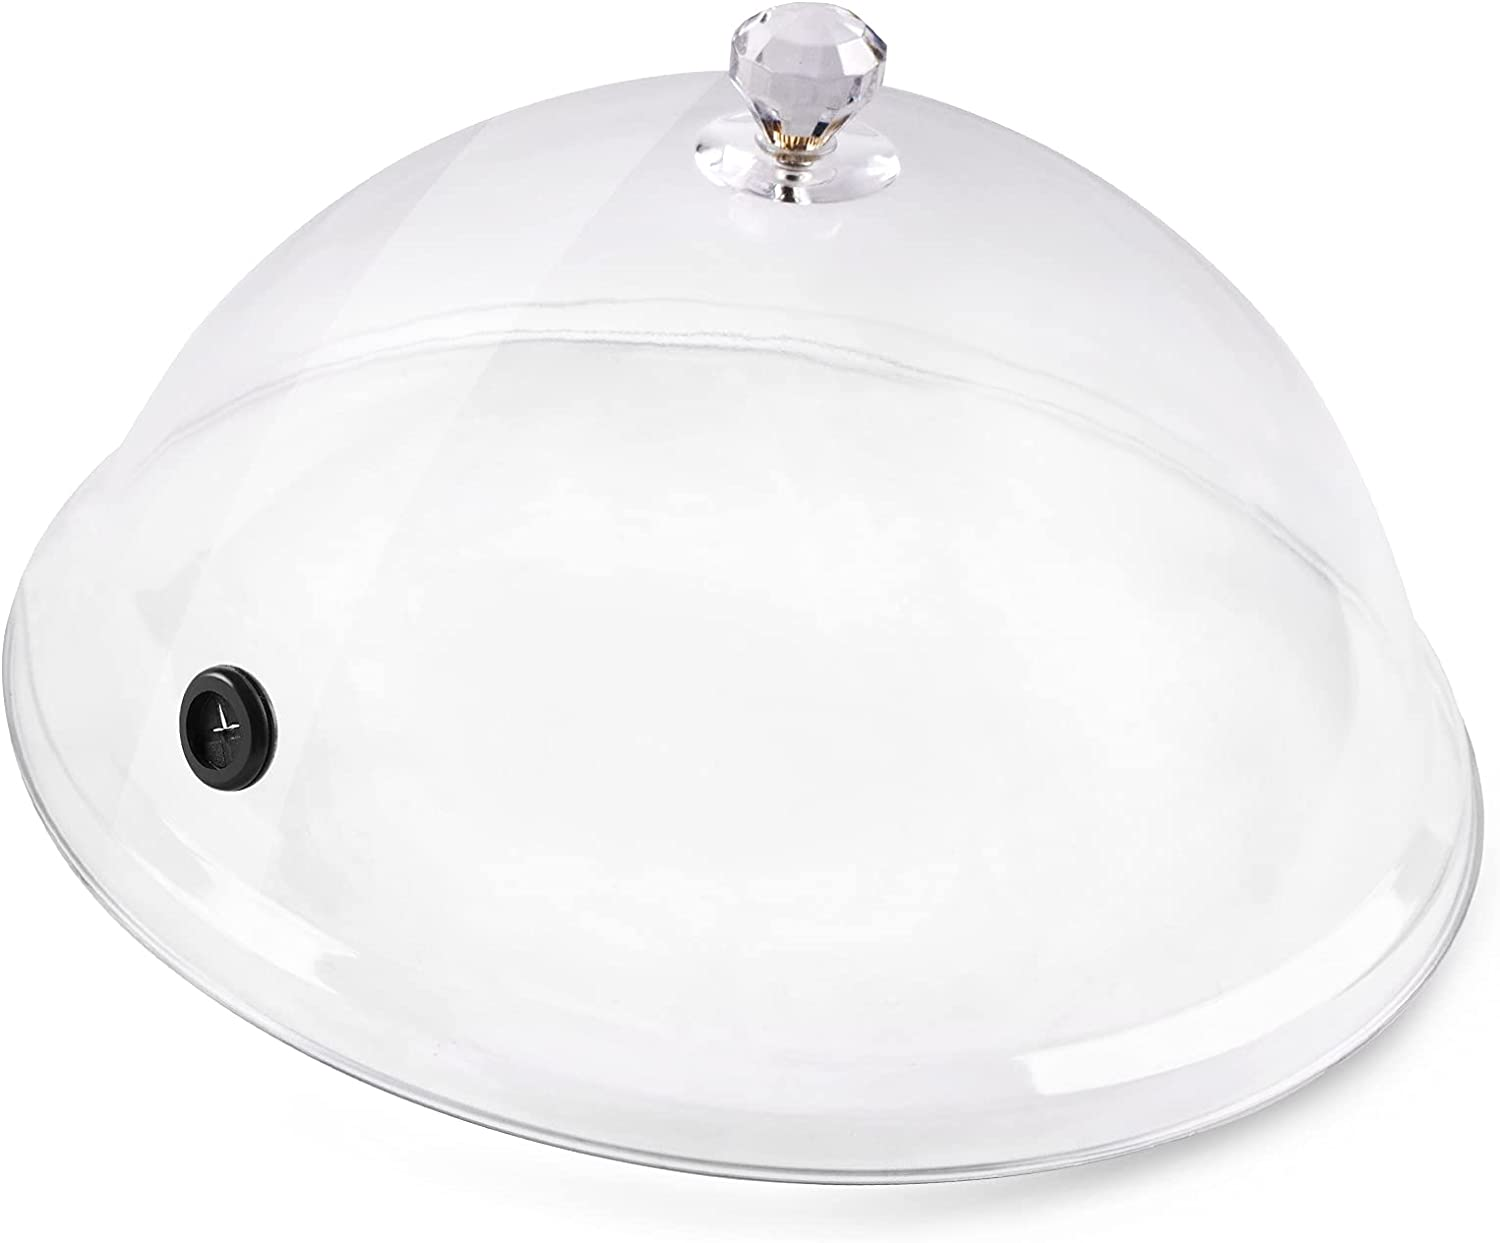 NEXT-SHINE Smoke Infuser Food Dome Cover 12 inch Plastic Lid Work for Plates Glasses Bowls with GM1100, Smoking Gun Specialized Accessory for Meat Cocktail Drinks BBQ